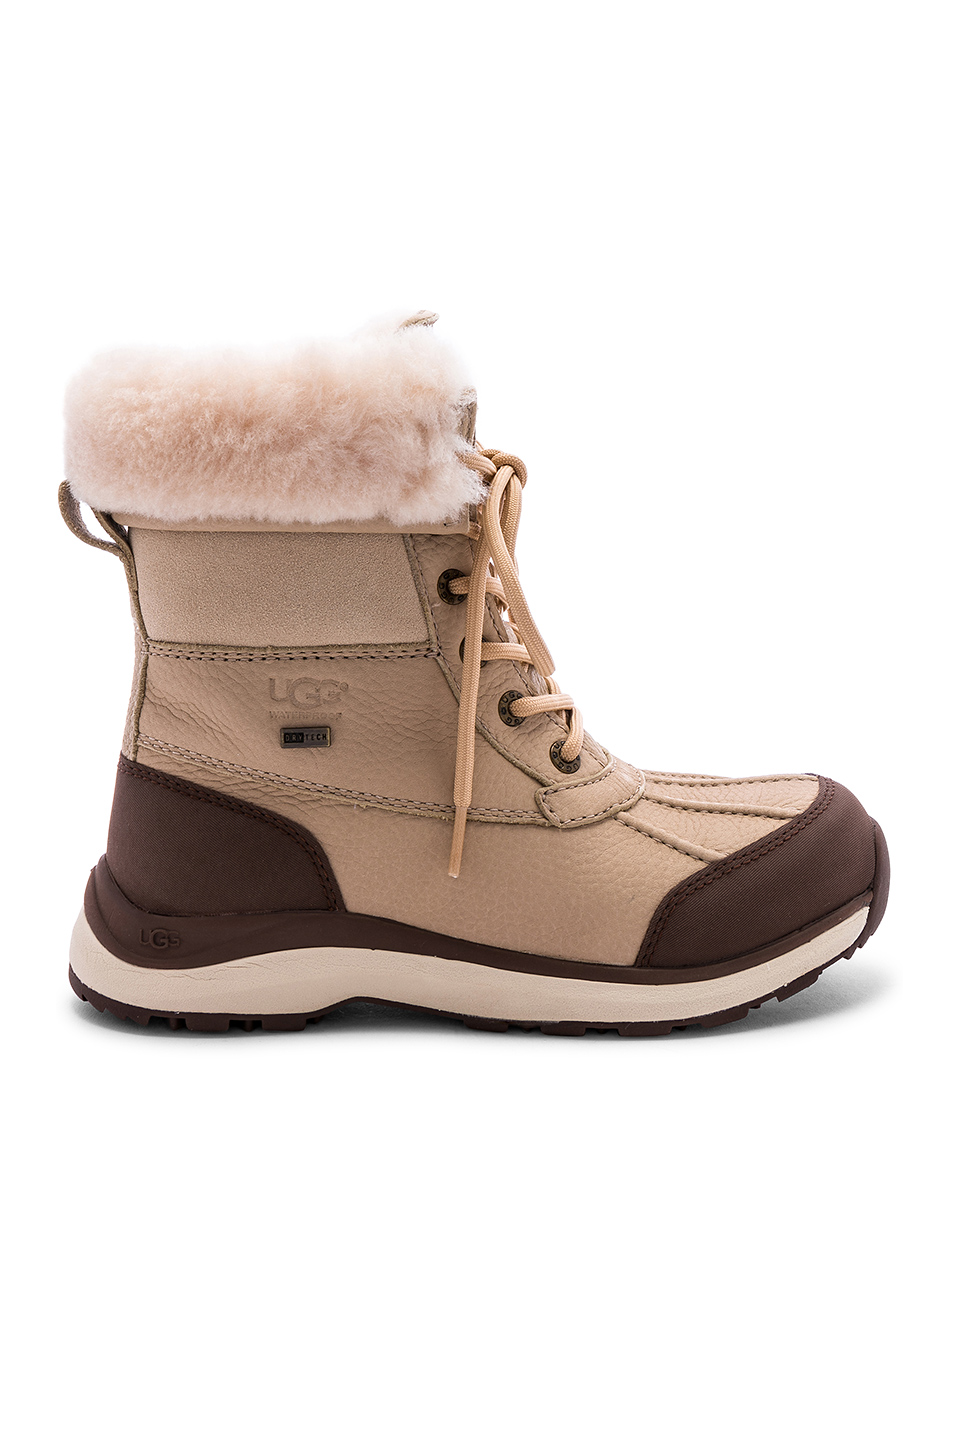 many styles special discount of attractive style Adirondack III Boot, UGG